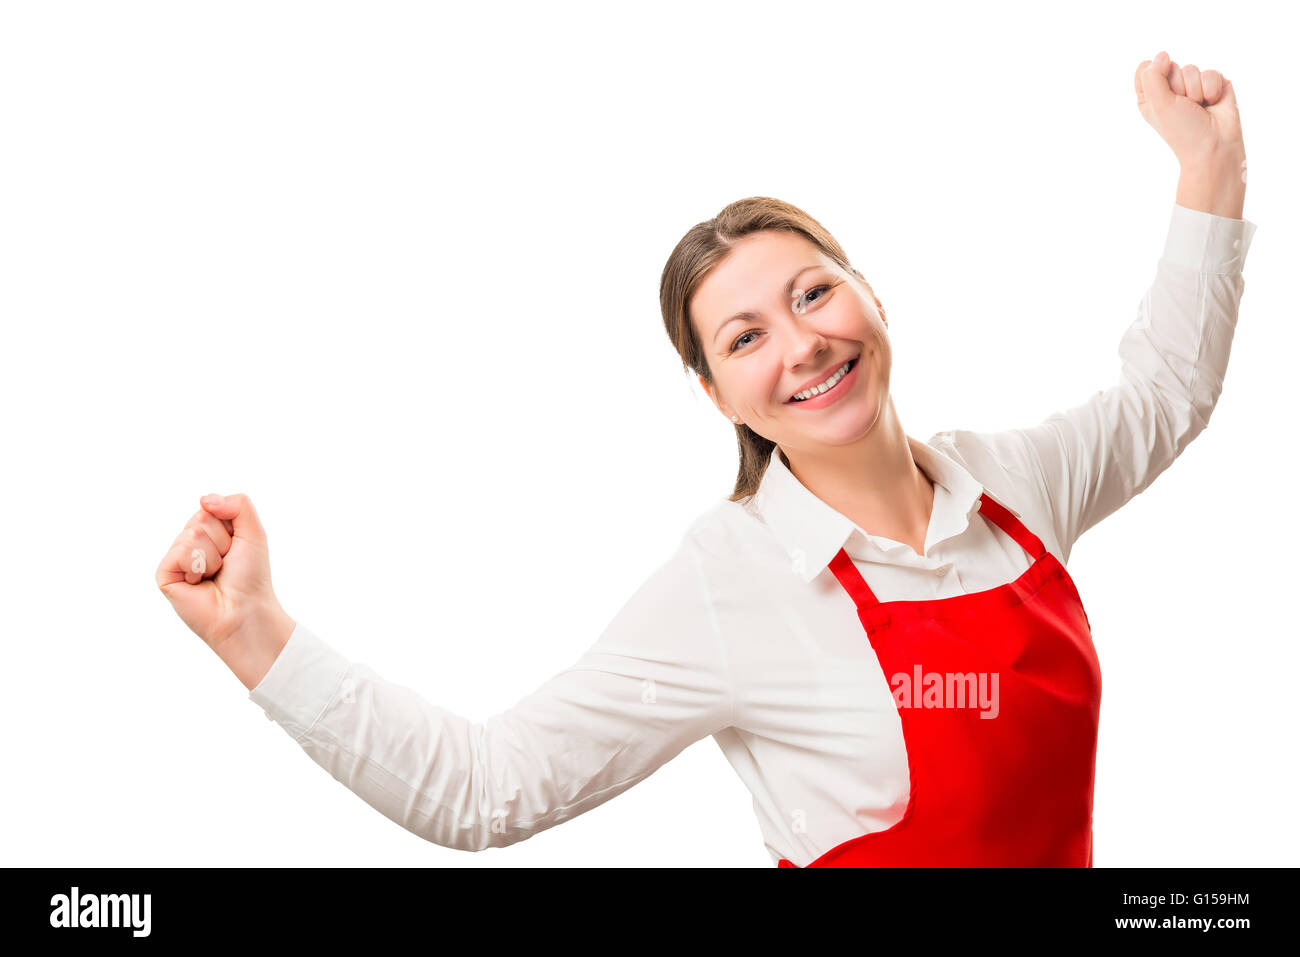 successful a housewife in red apron rejoices in isolation - Stock Image